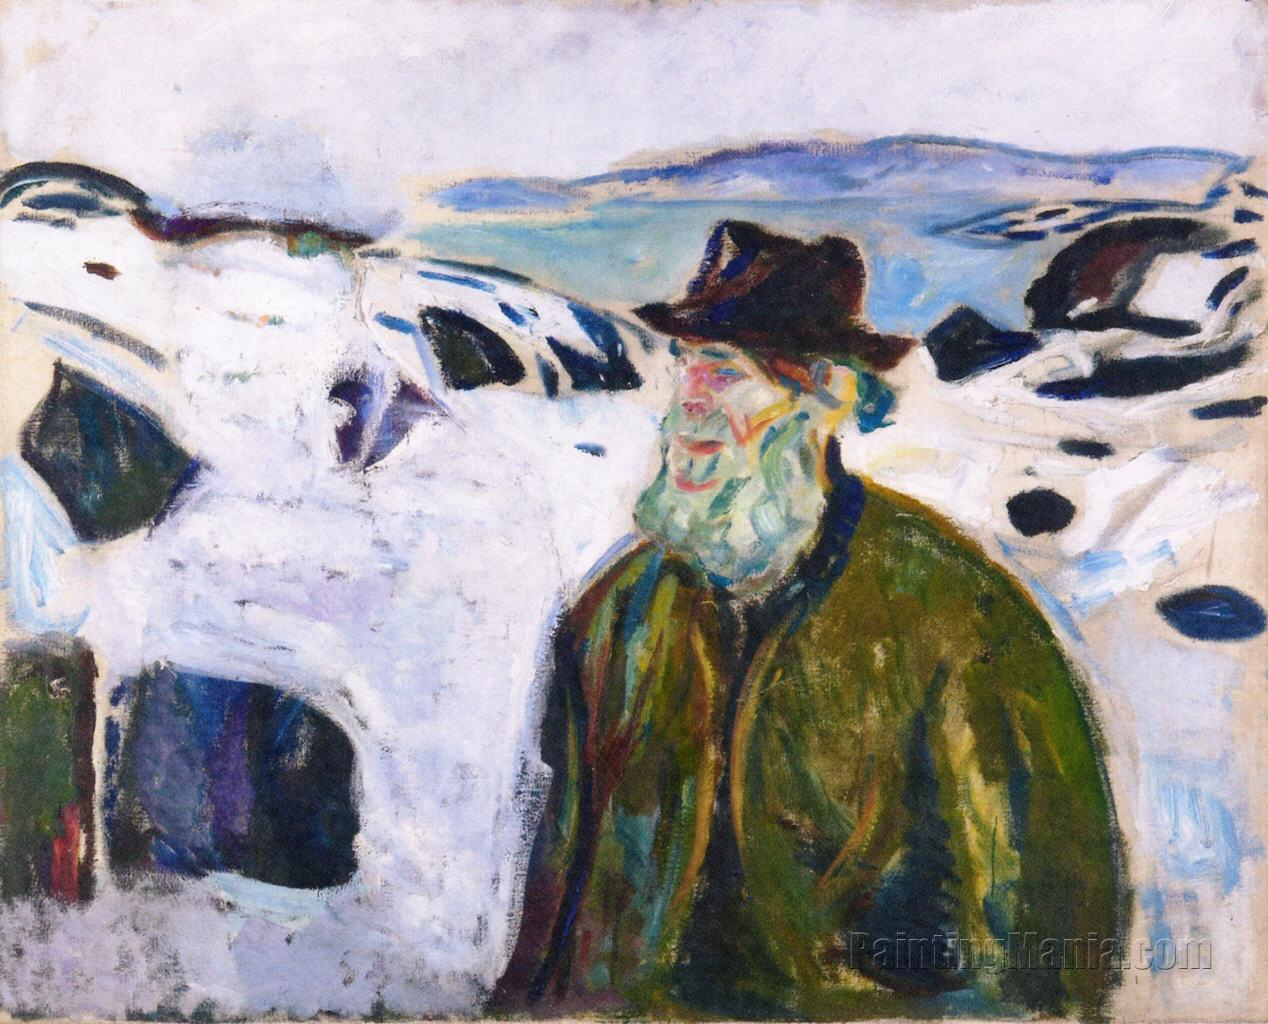 Old Fisherman on Snow-Covered Coast